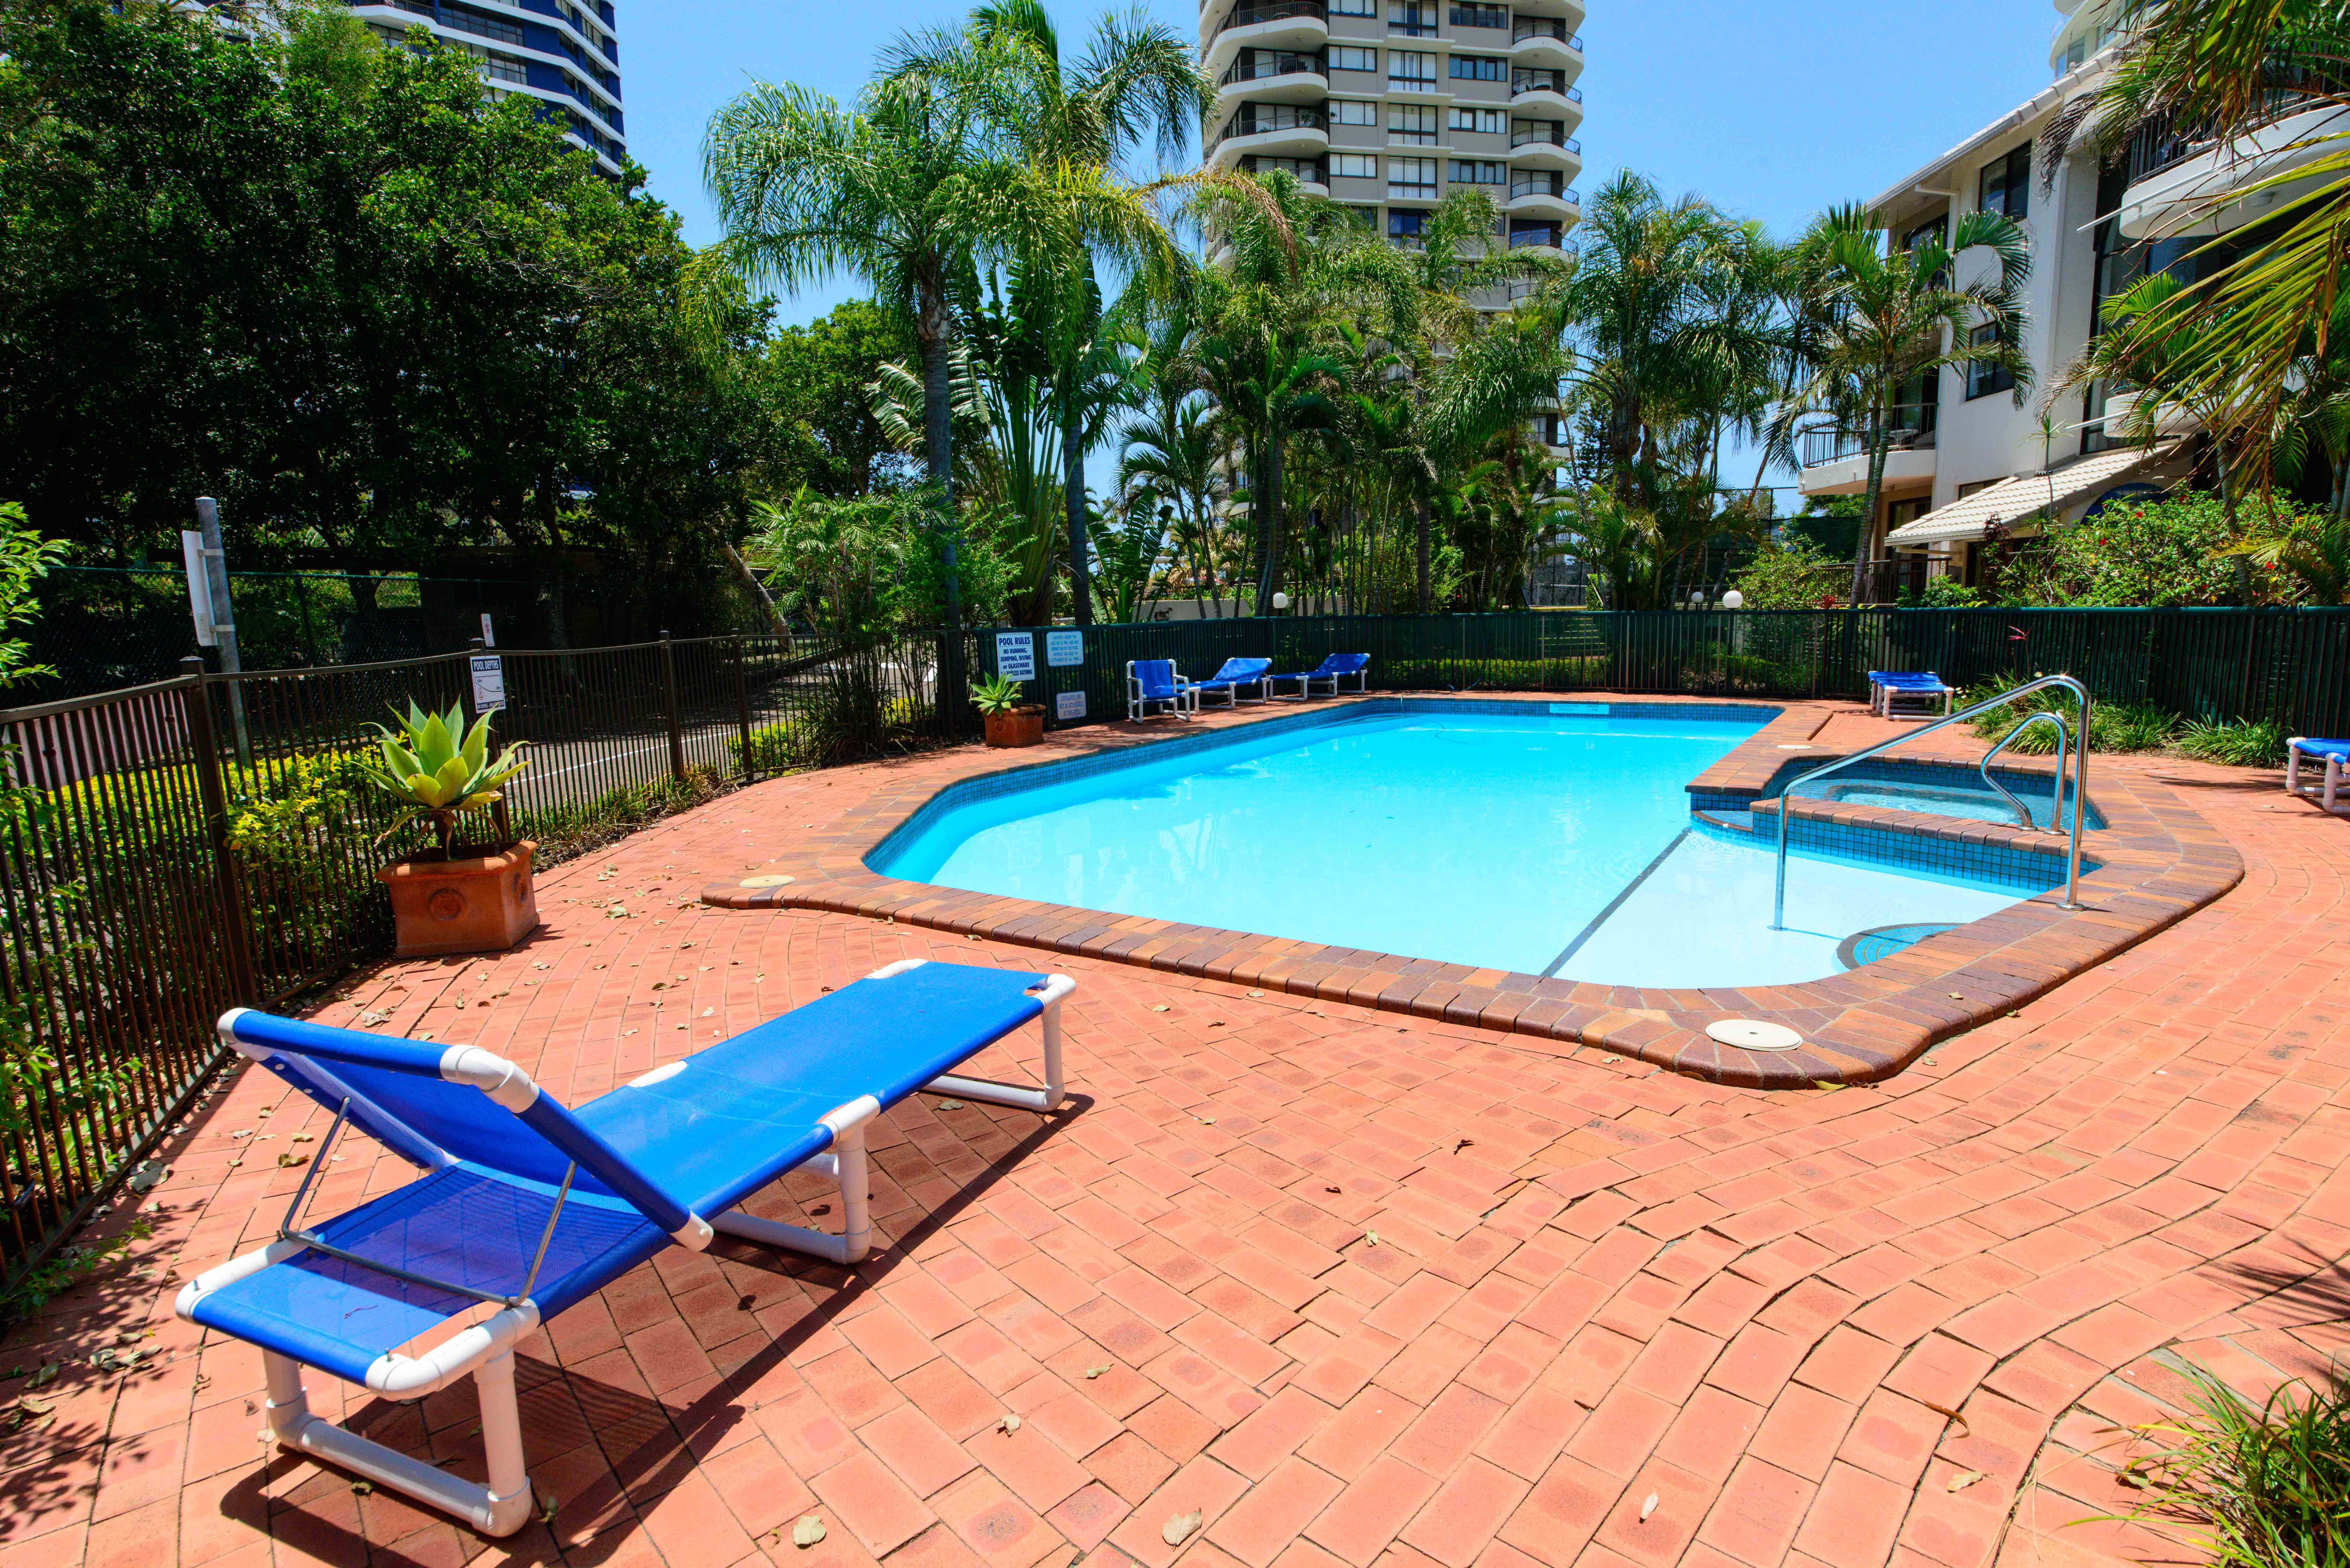 broadwater shores villa pool